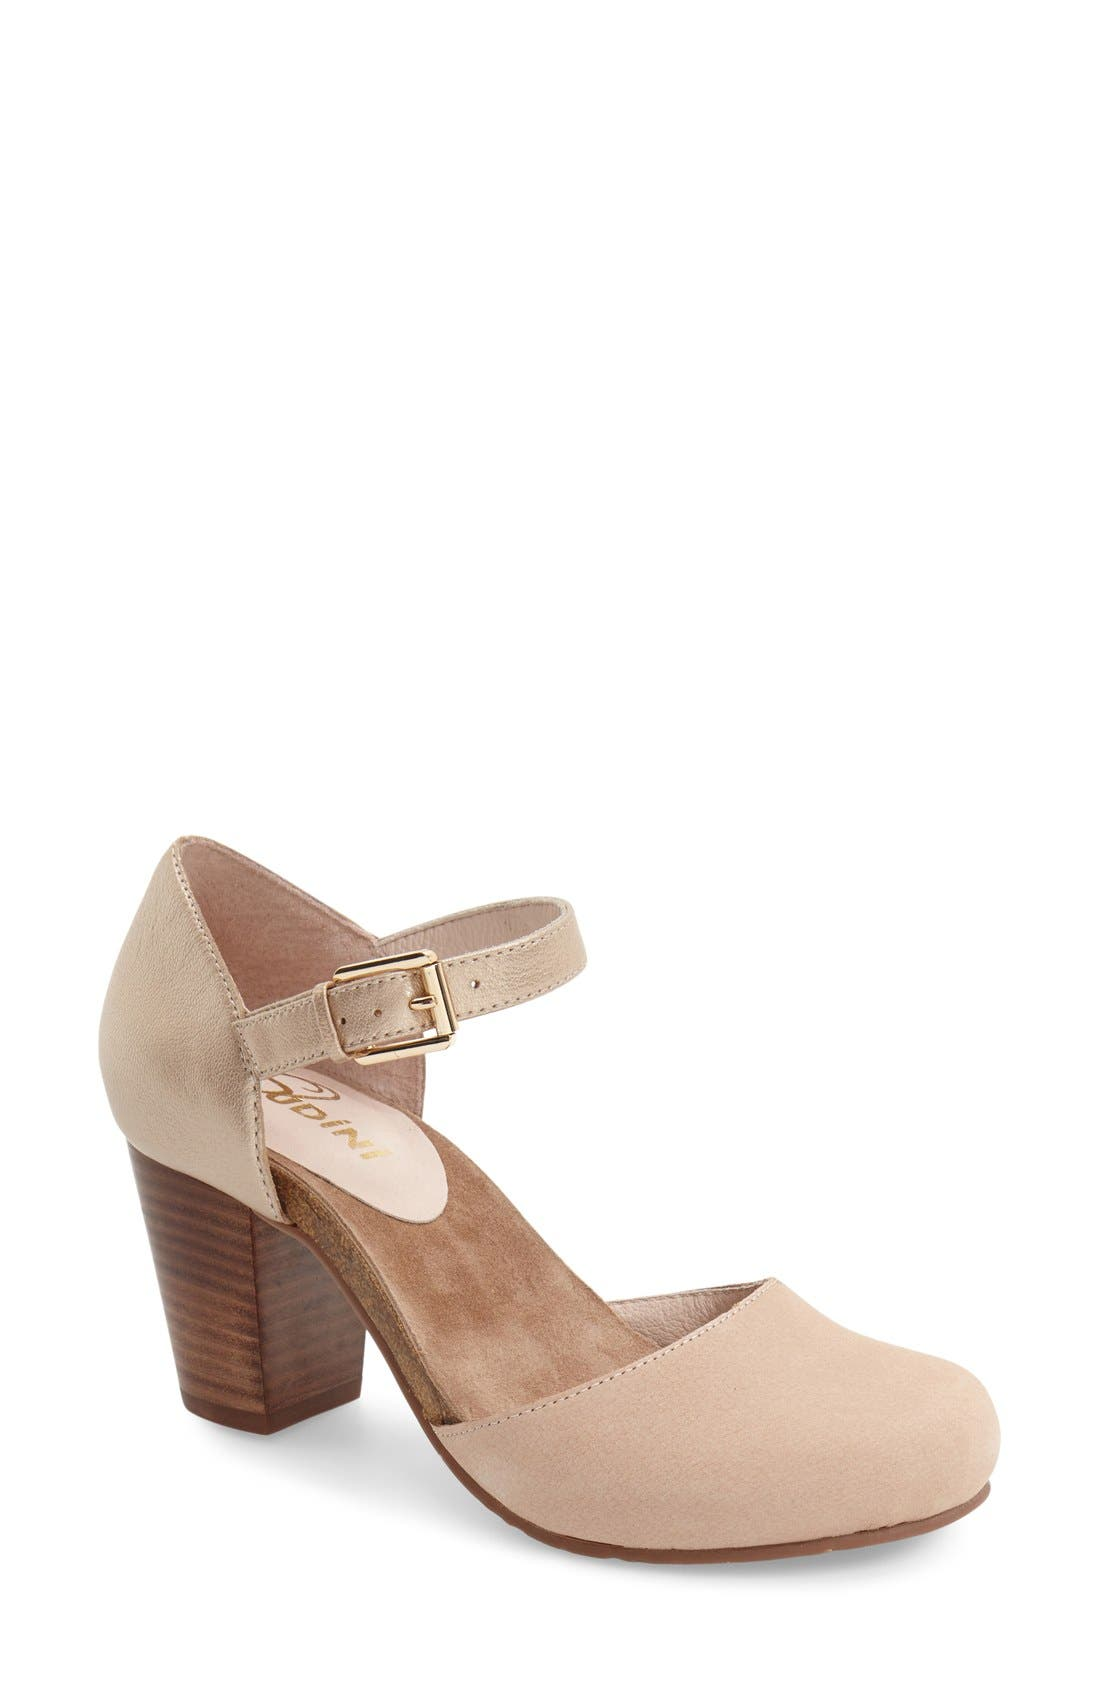 Alternate Image 1 Selected - Sudini 'Cam' Mary Jane Pump (Women)